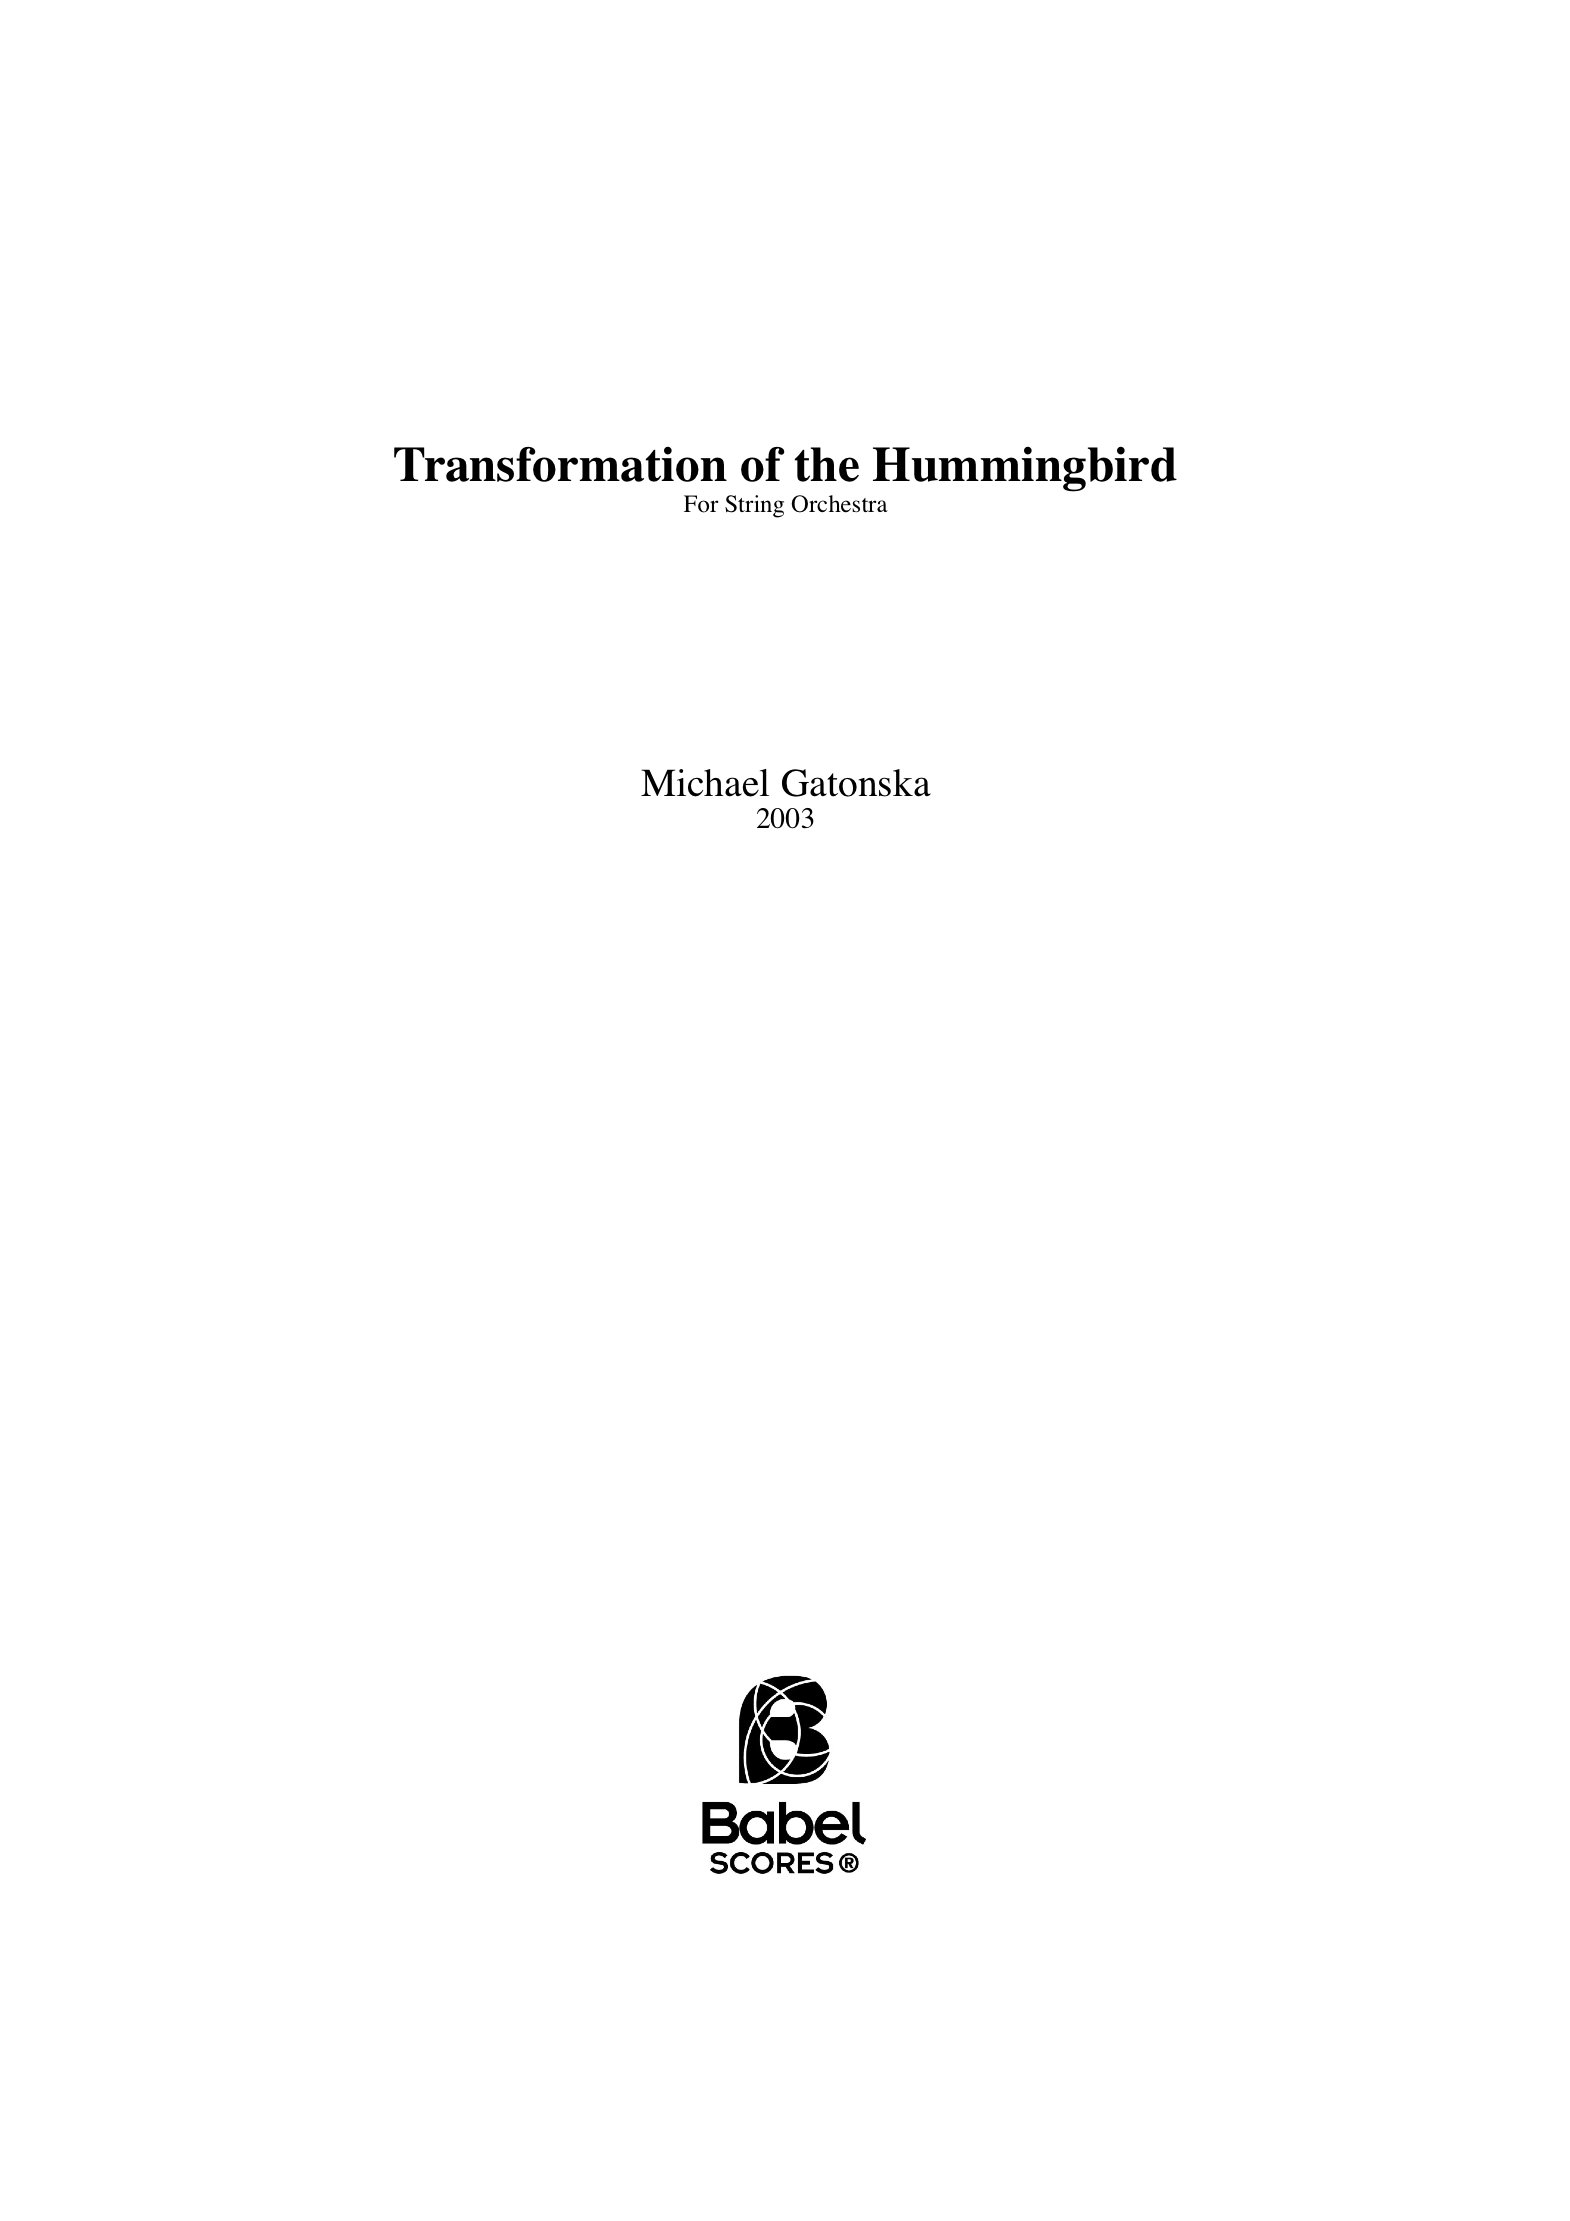 Transformation of the Hummingbird